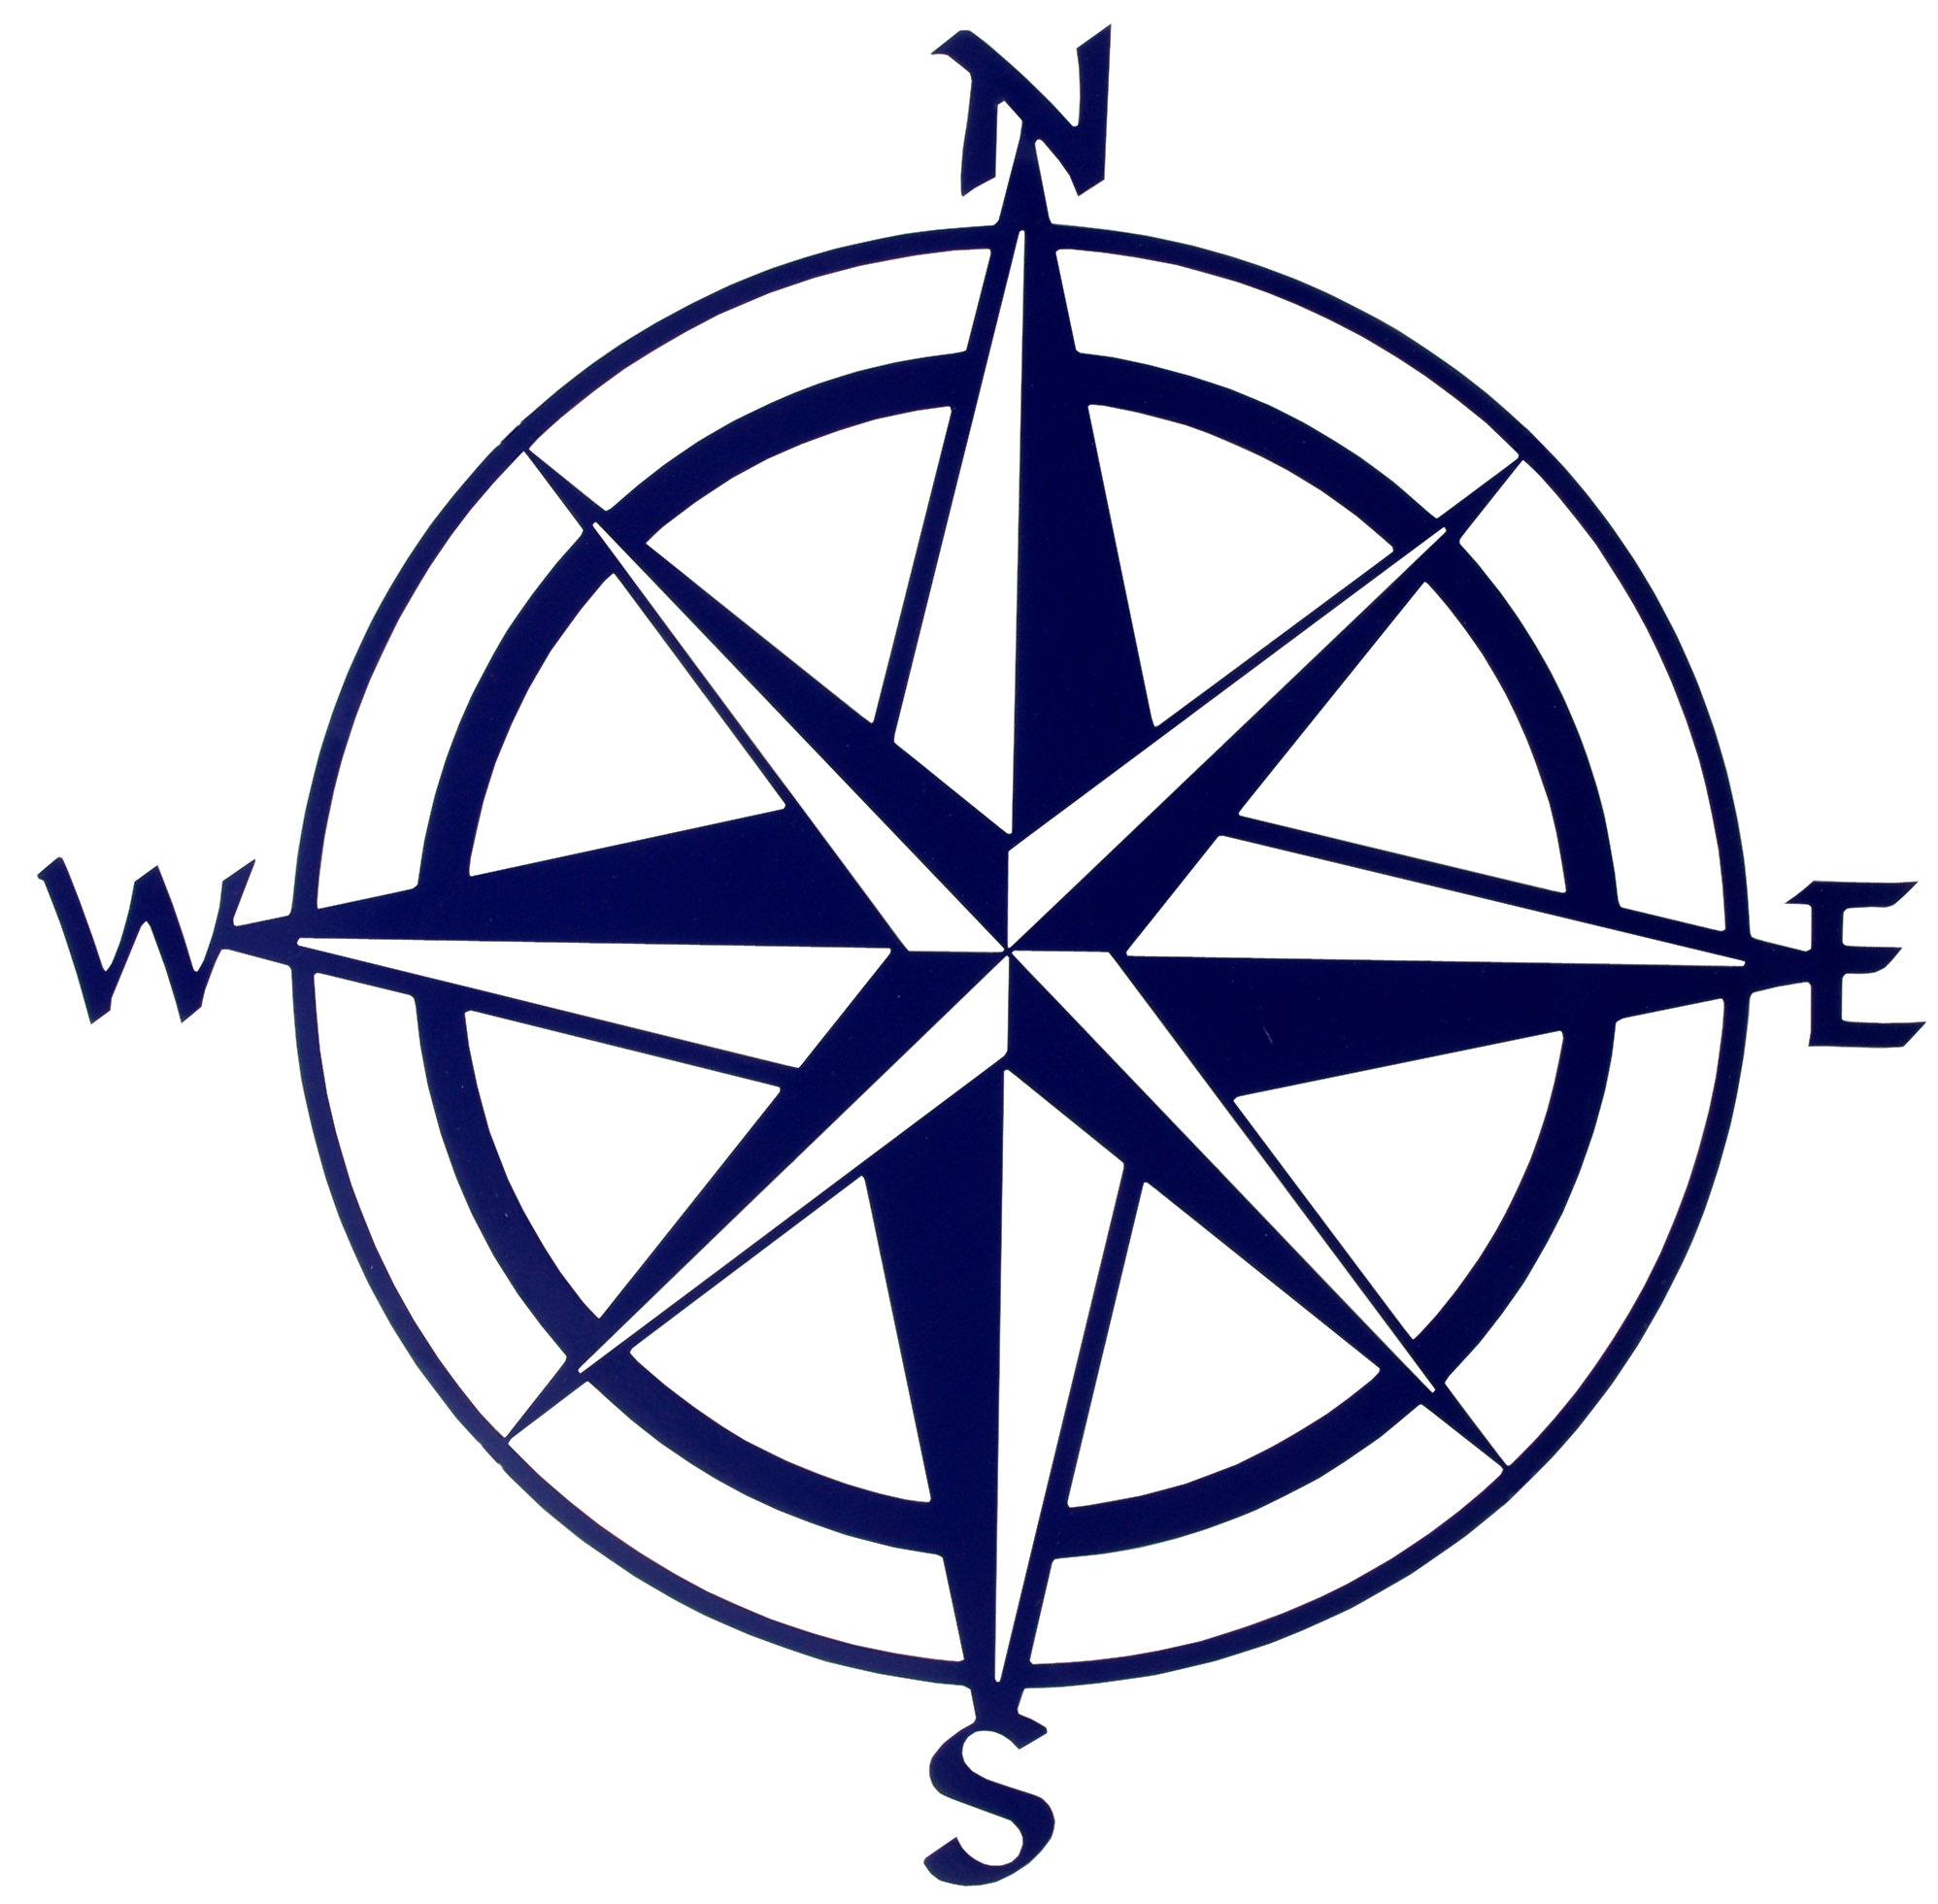 5 Images of Compass Rose Printable